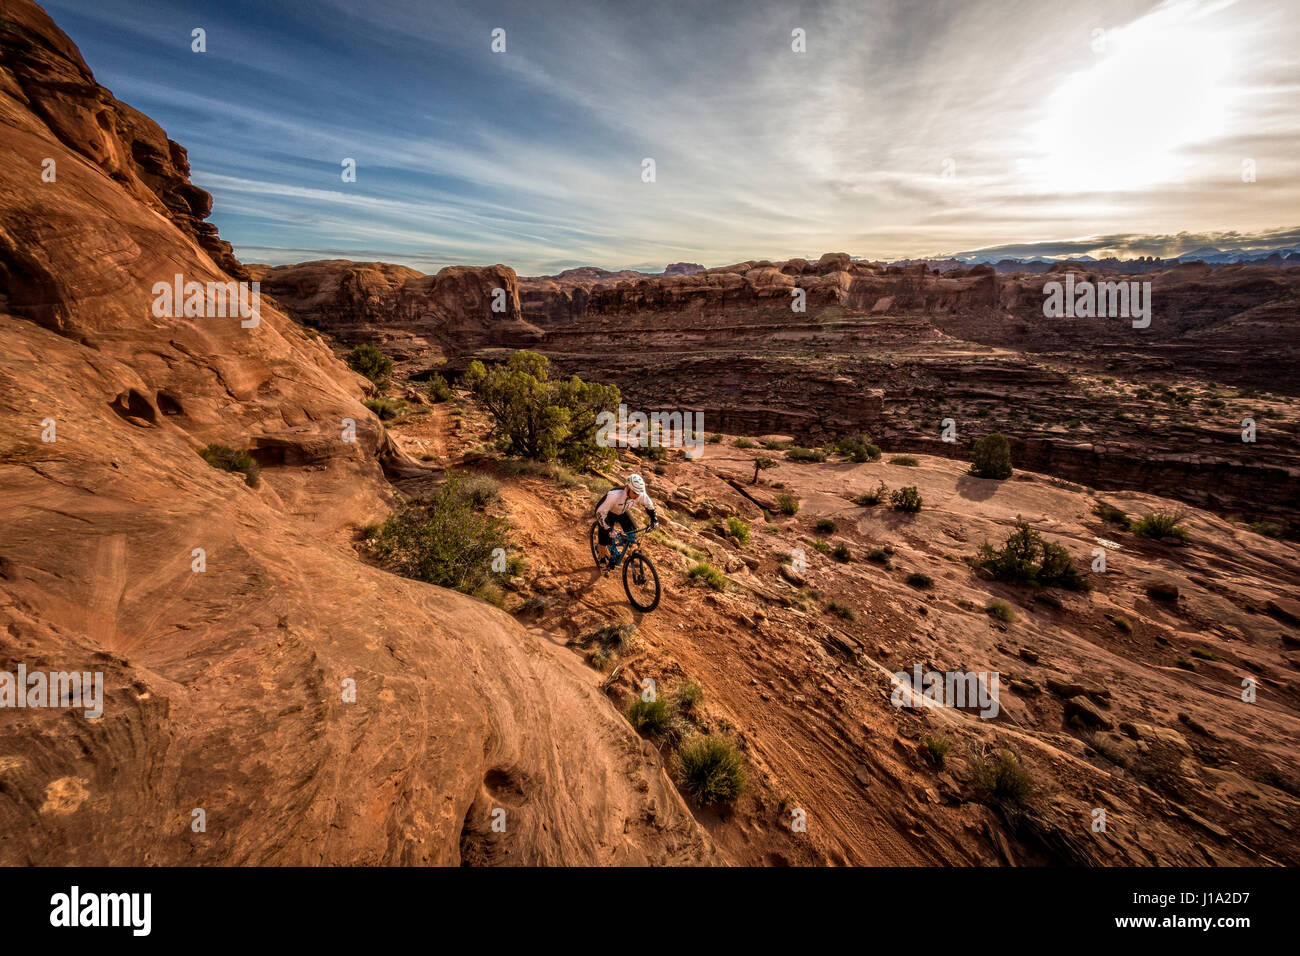 Kyle Mears mountain biking on the Hymasa trail, Moab, Utah. - Stock Image